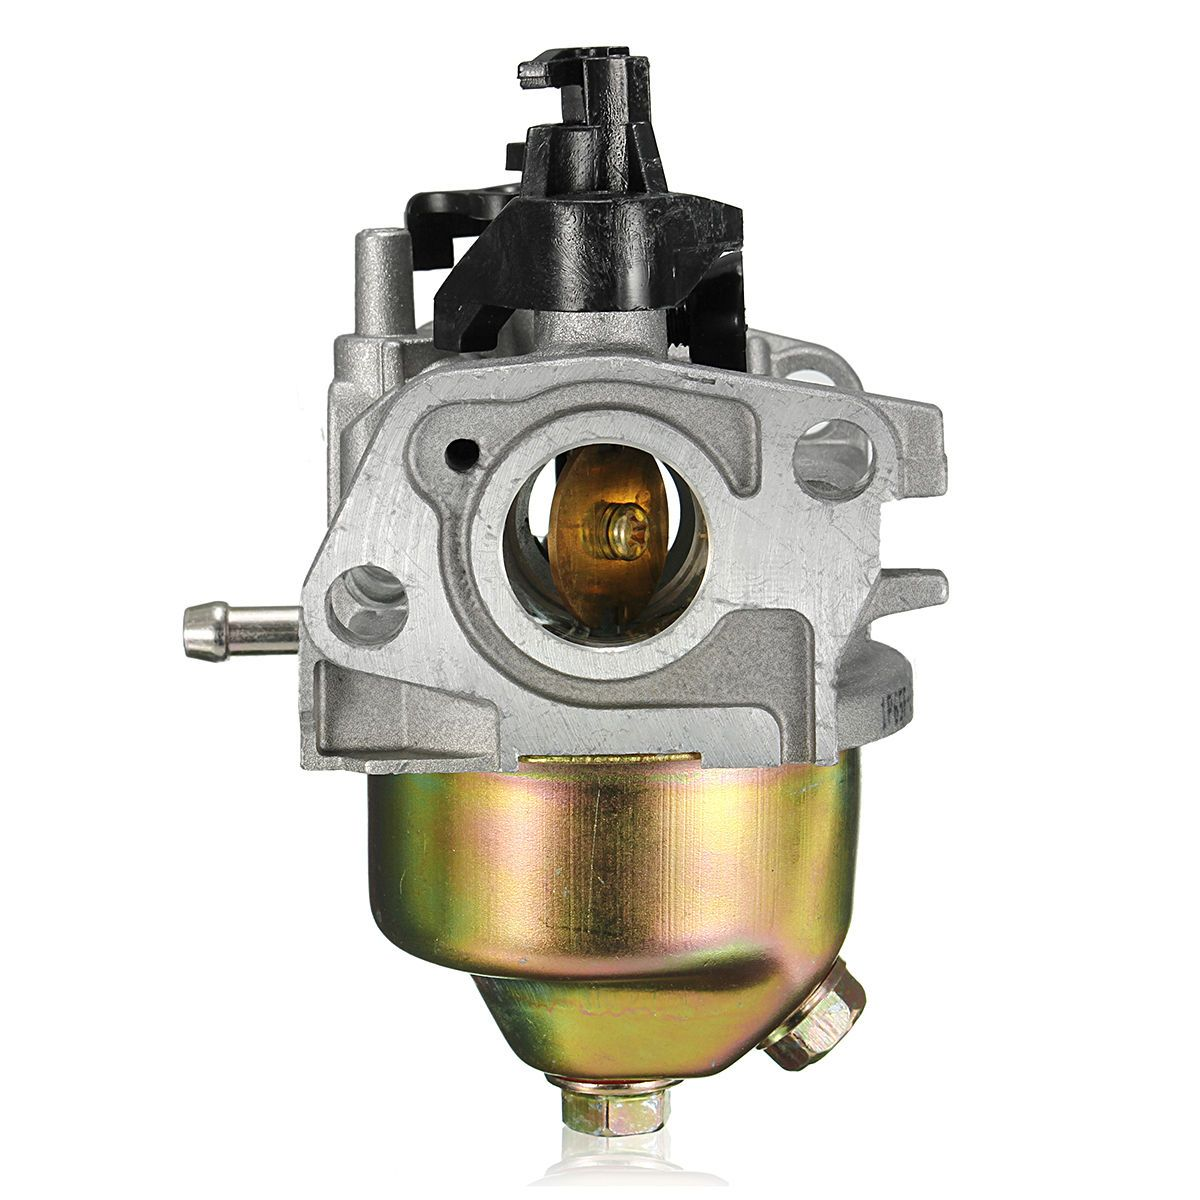 New Engine Carburetor Carb Mayitr Lawn Mower engines Carburetor For Chainsaw Hot Selling high quality snow blower thrower carburetor carb 640084 for hsk40 hsk50 632107 632107a 521 small engine mower generator